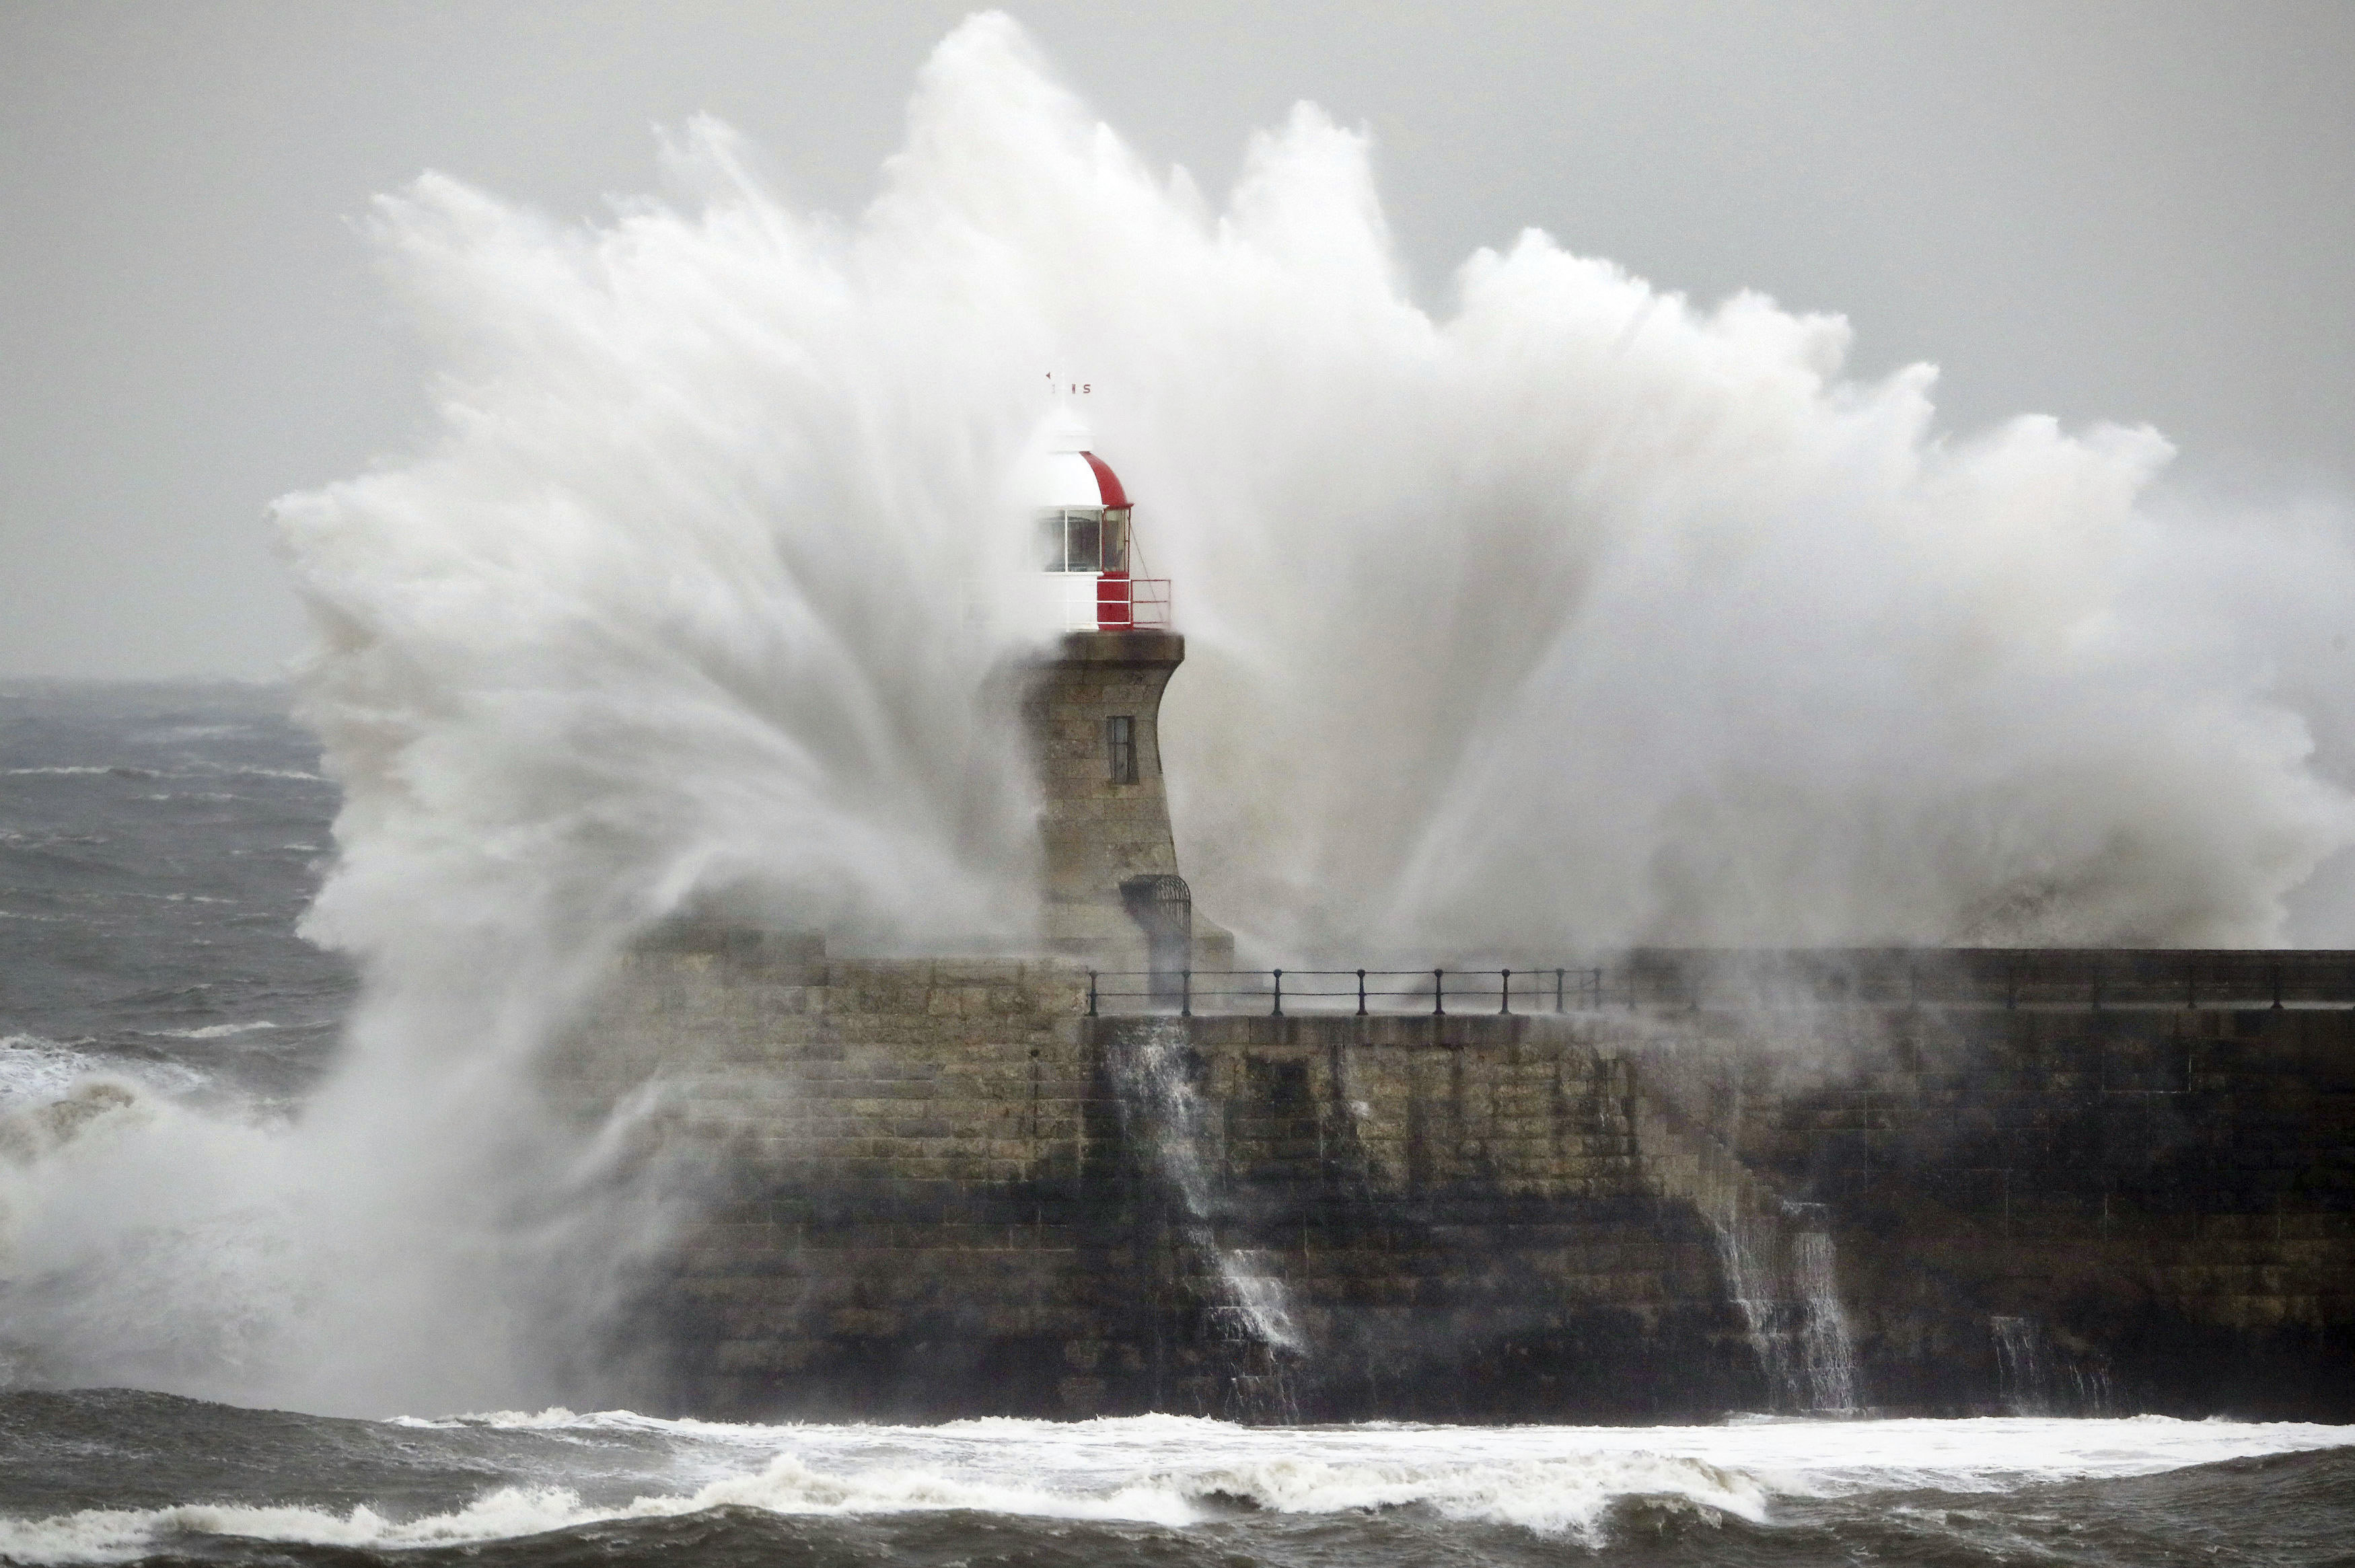 Giant waves crash over Souter Lighthouse in South Shields in Tynemouth, England, Friday, March 2, 2018 as extreme weather has continued to wreak havoc across the UK